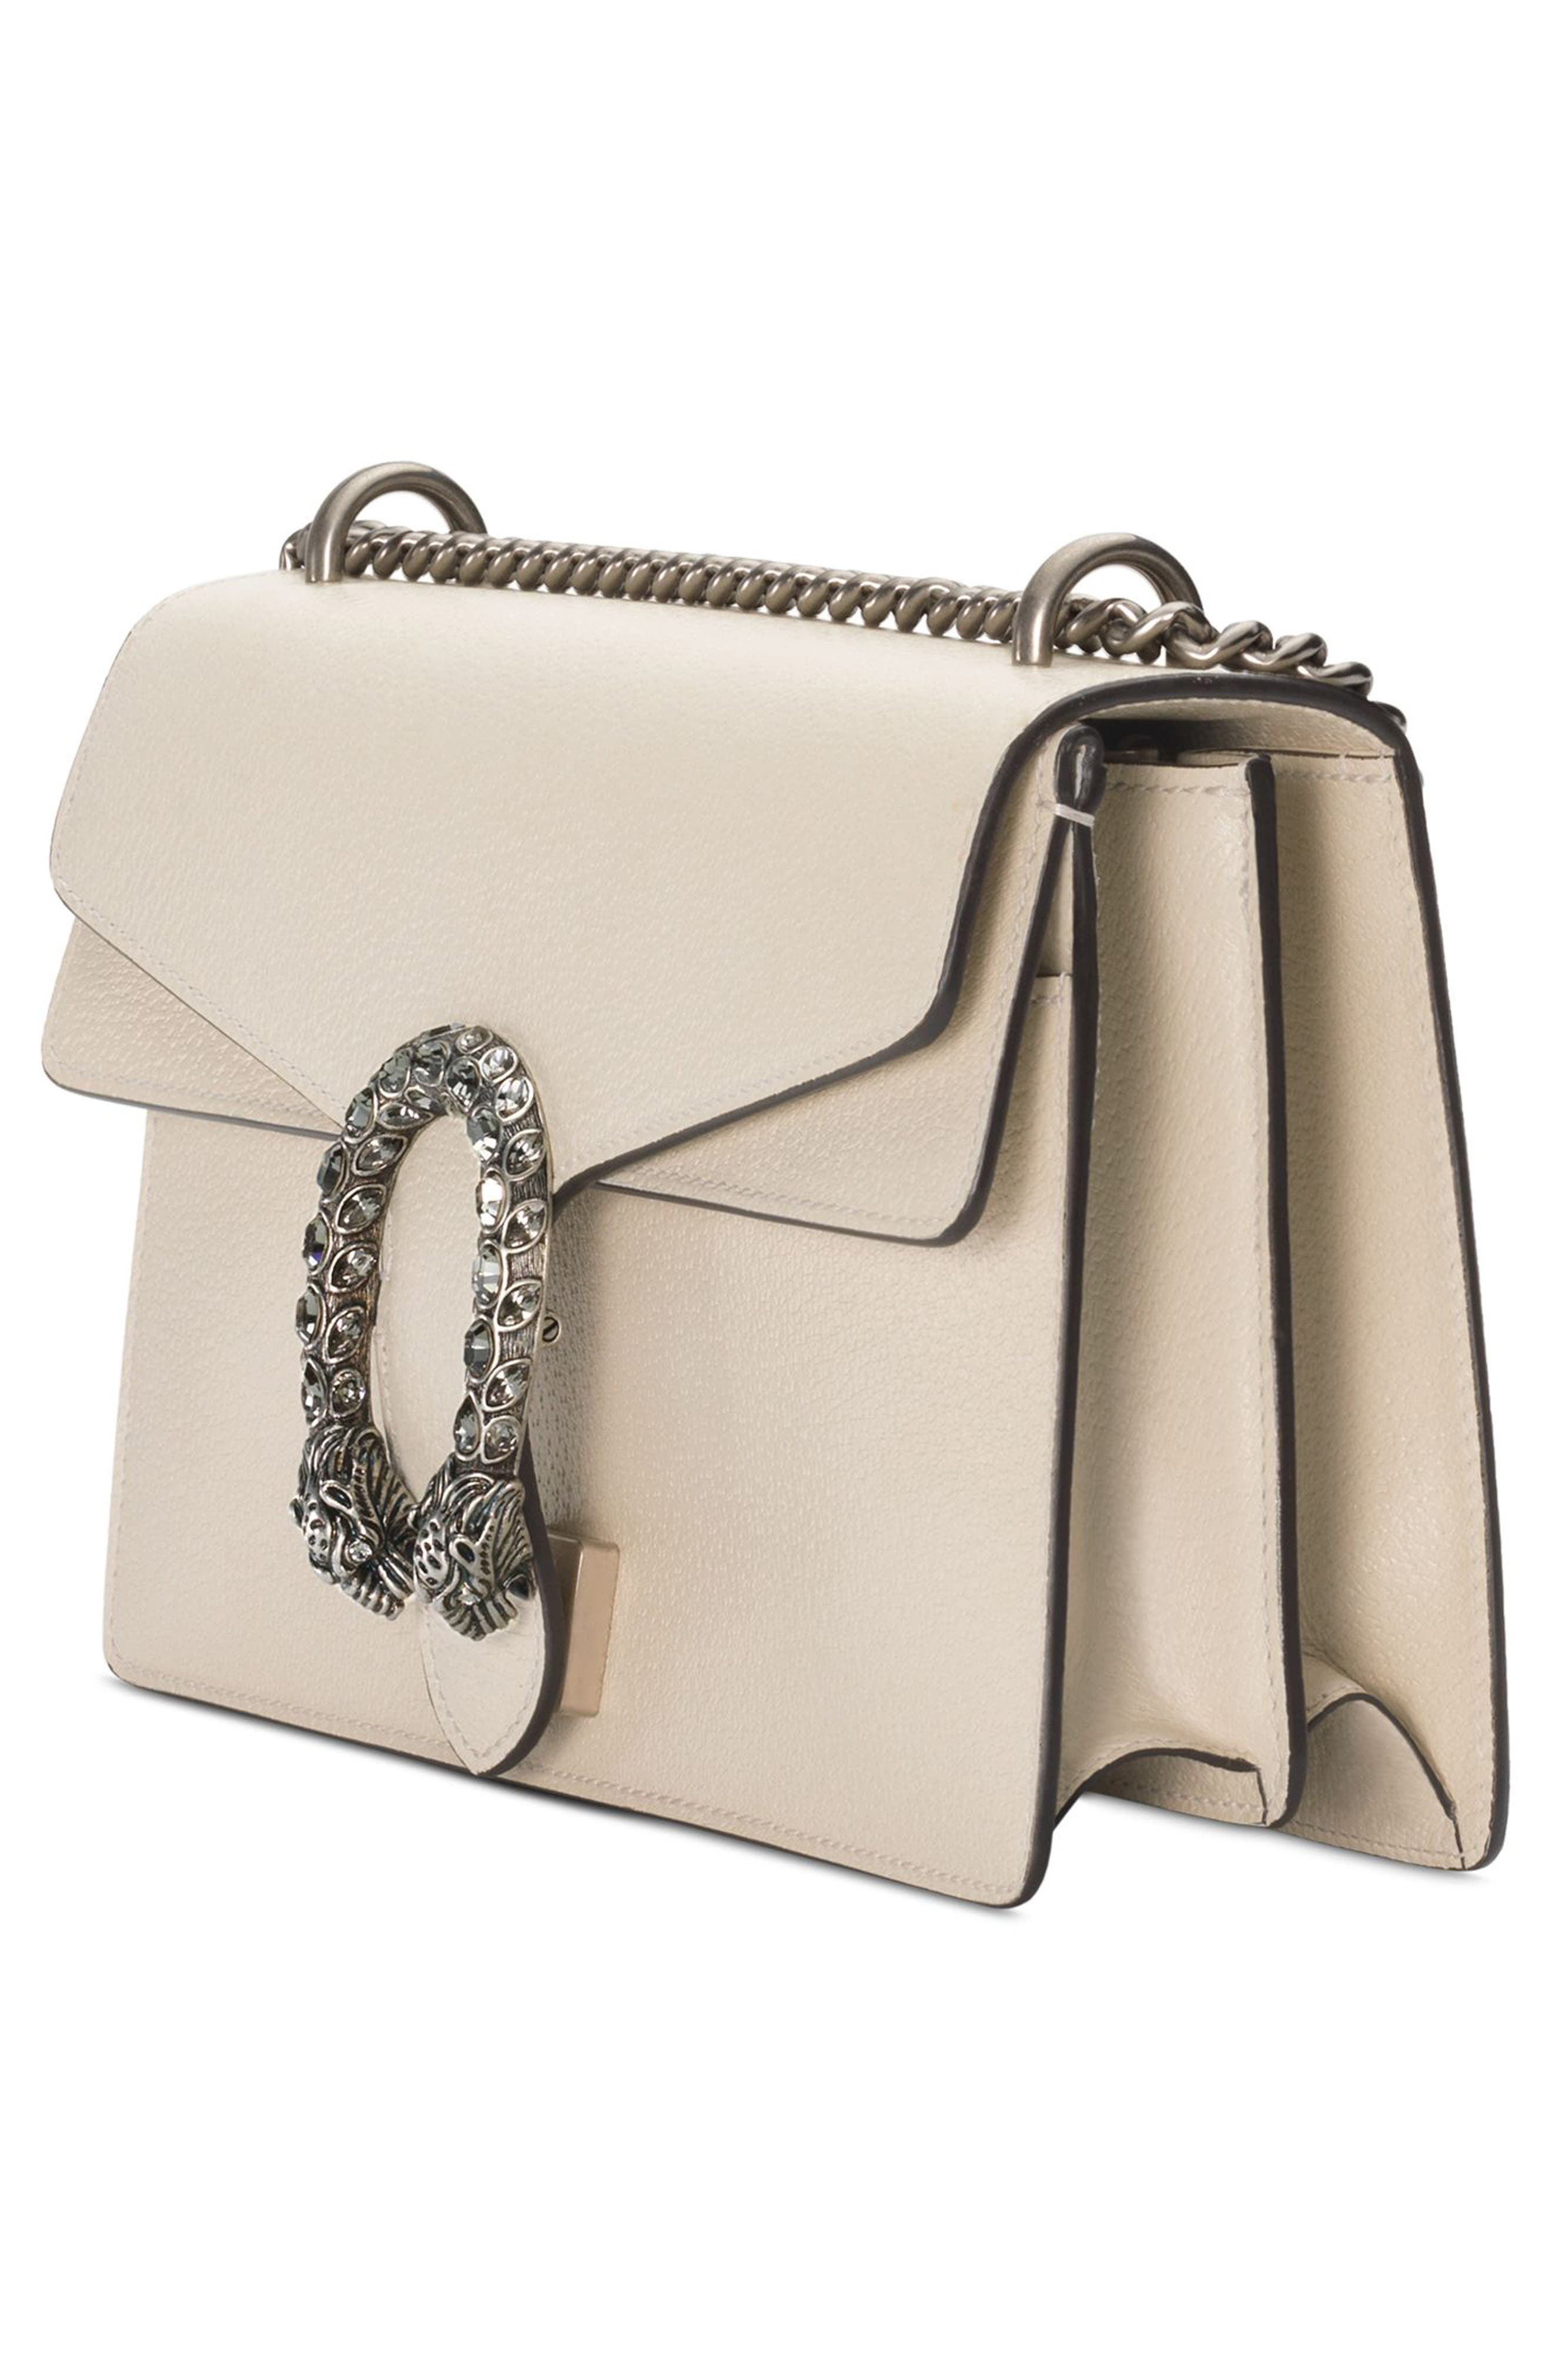 Small Dionysus Leather Shoulder Bag,                             Alternate thumbnail 4, color,                             IVORY/ BLACK DIAMOND